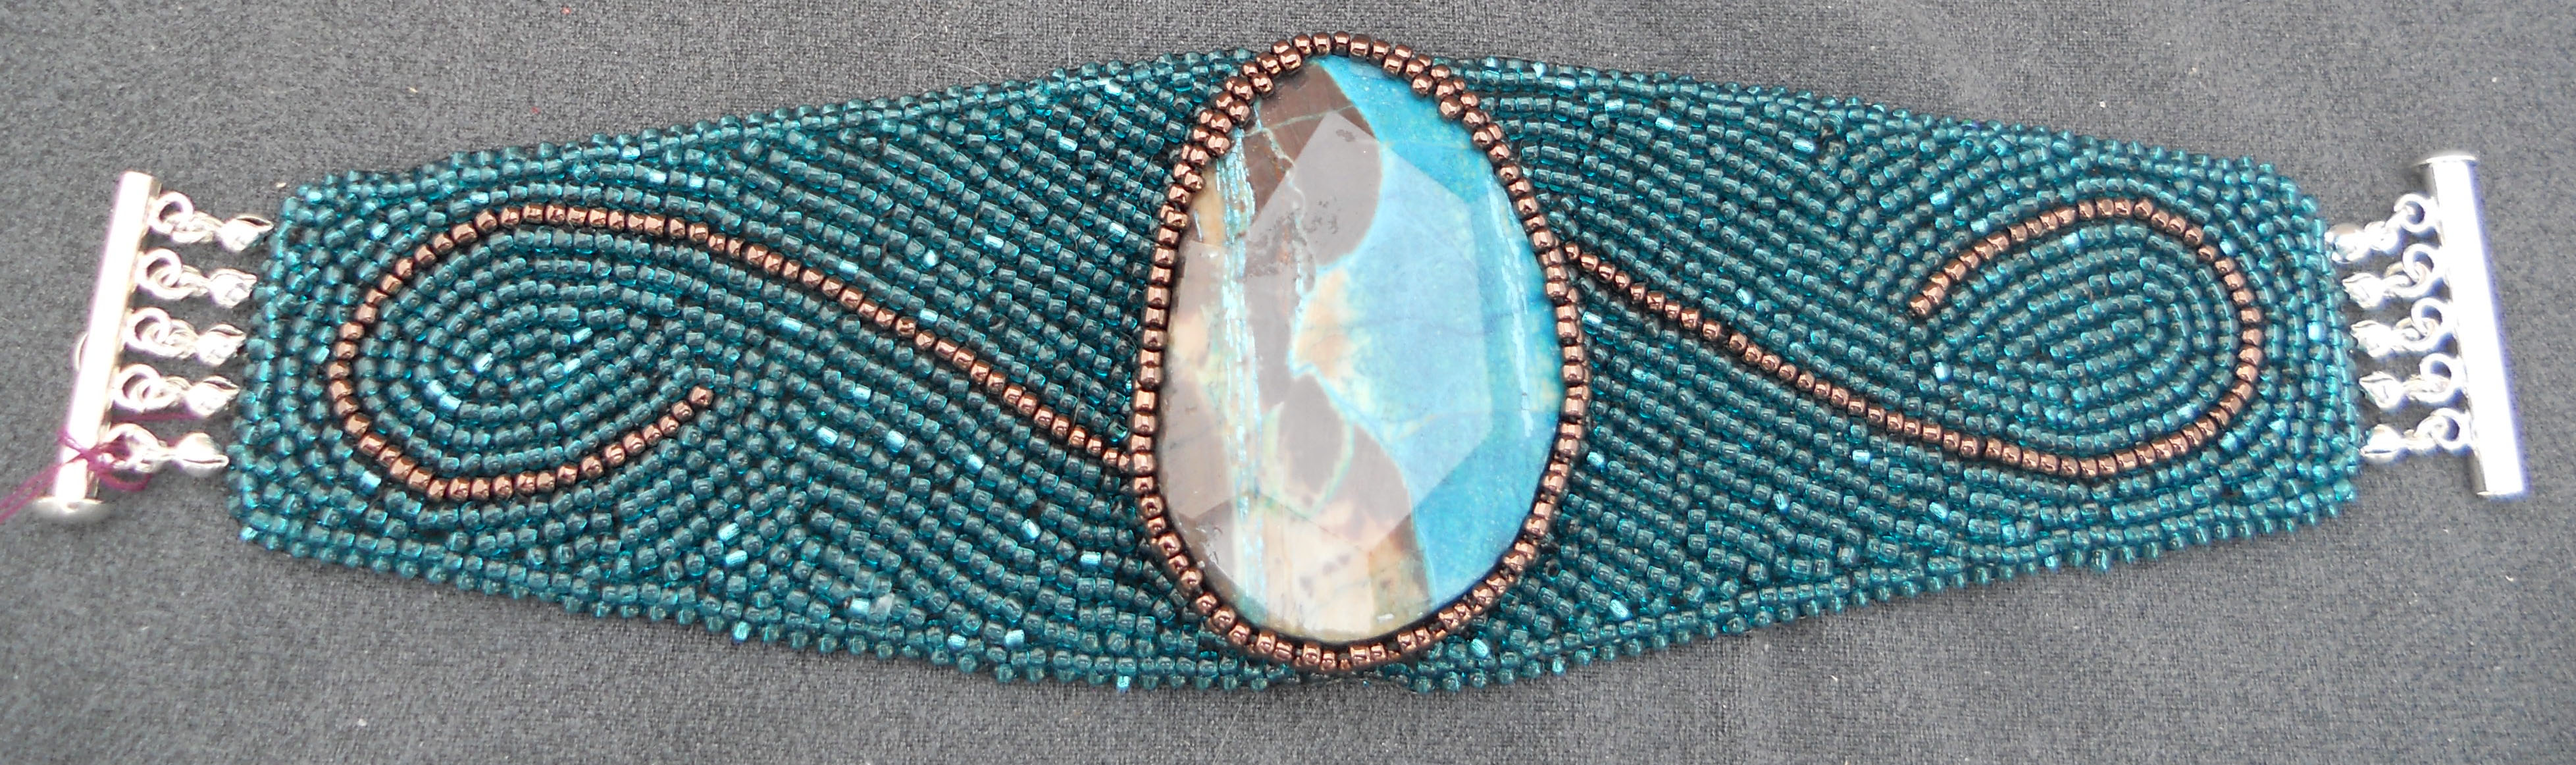 picture of bracelet using a freeform slab chrysocolla cabochon as focal  stone. The bracelet is